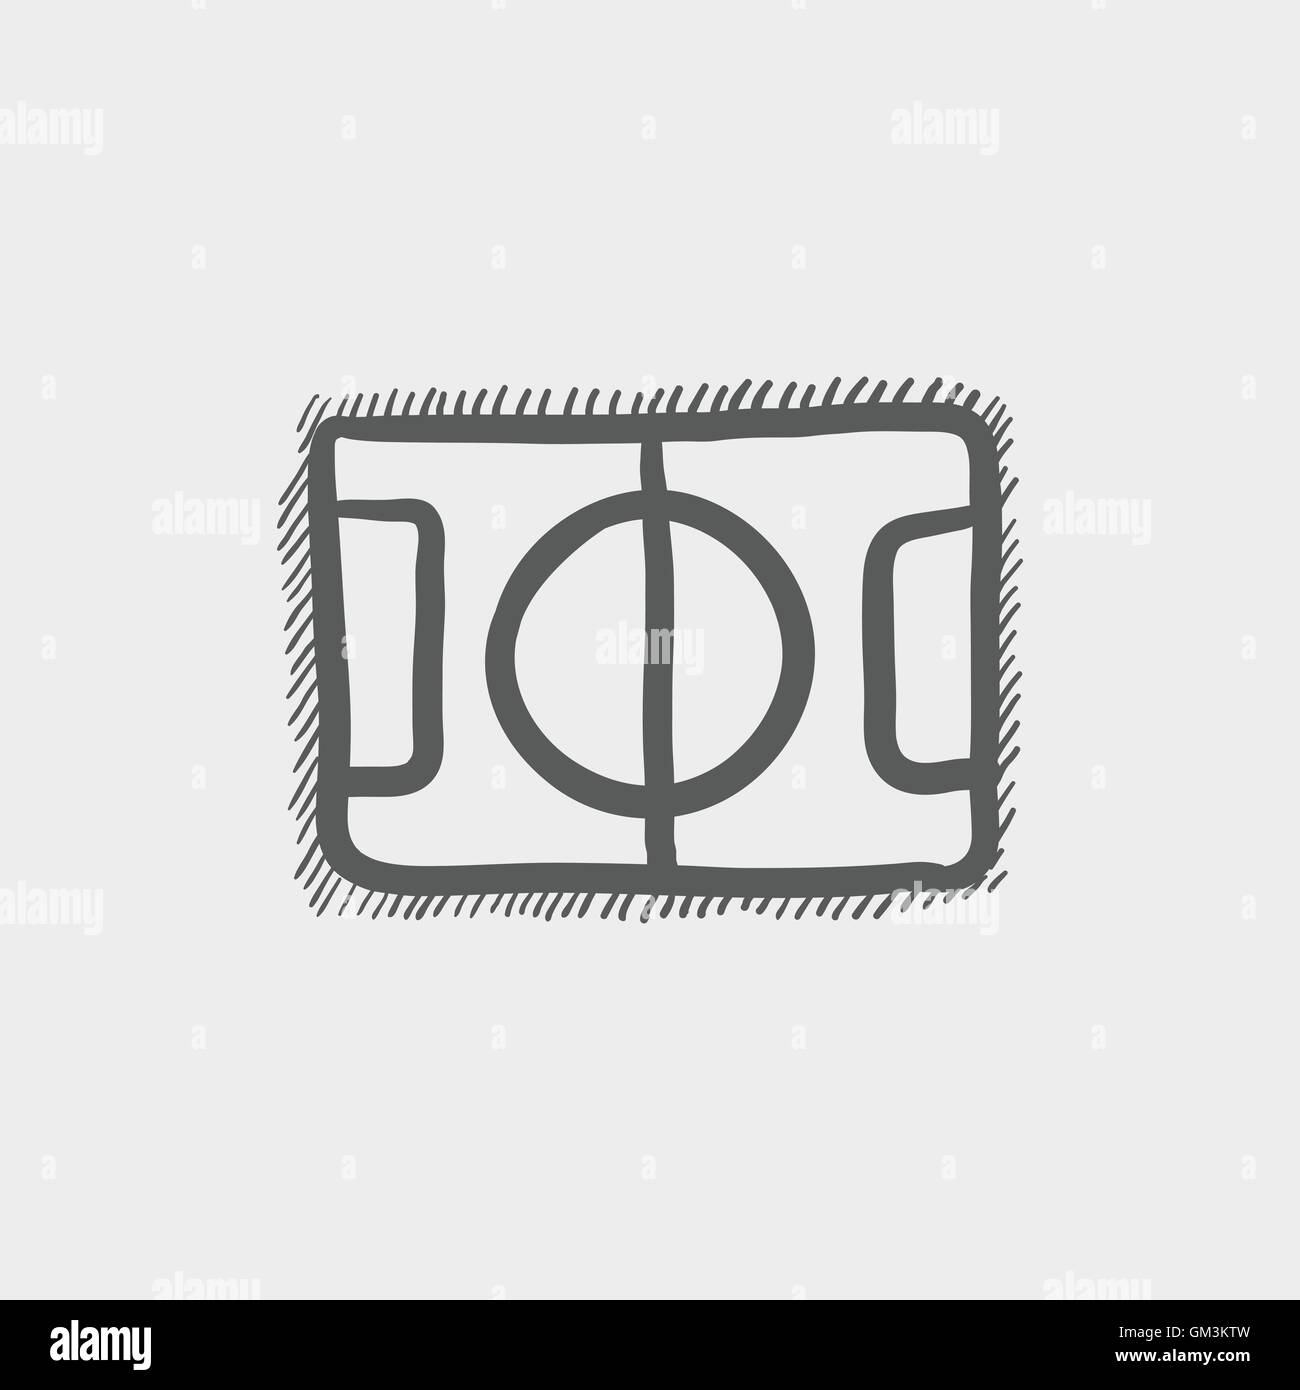 Basketball court sketch icon - Stock Image